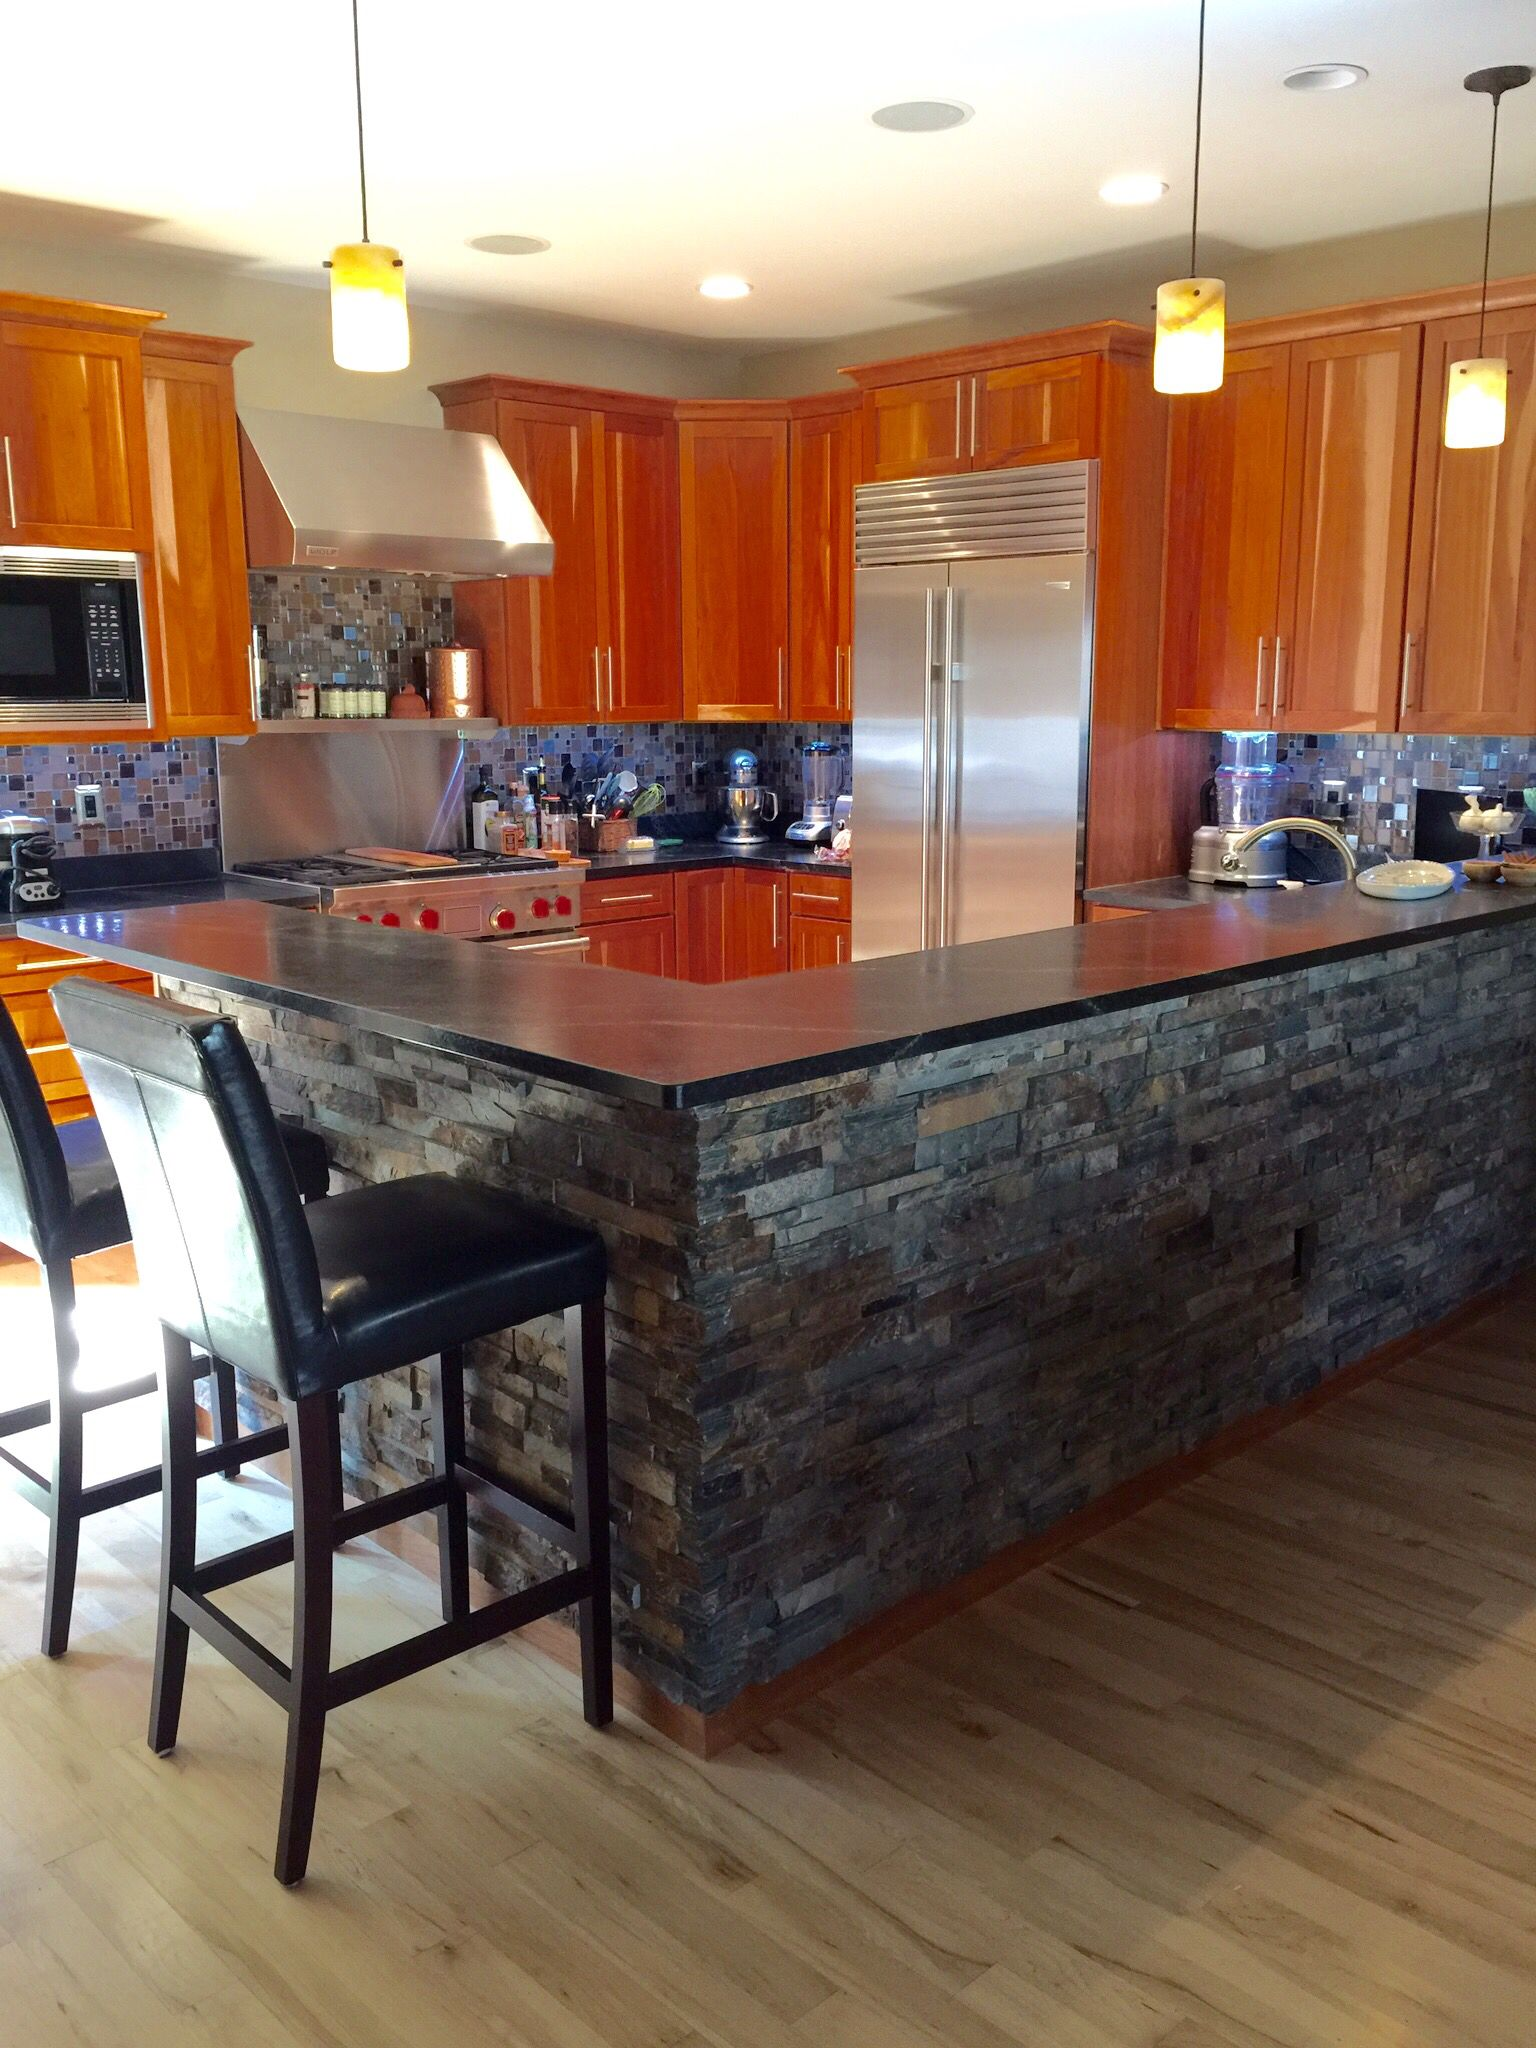 Awesome gourmet kitchen with dry stacked stone bar front and glass with slate kitchen backsplash - Awesome kitchen from stone more cheerful ...